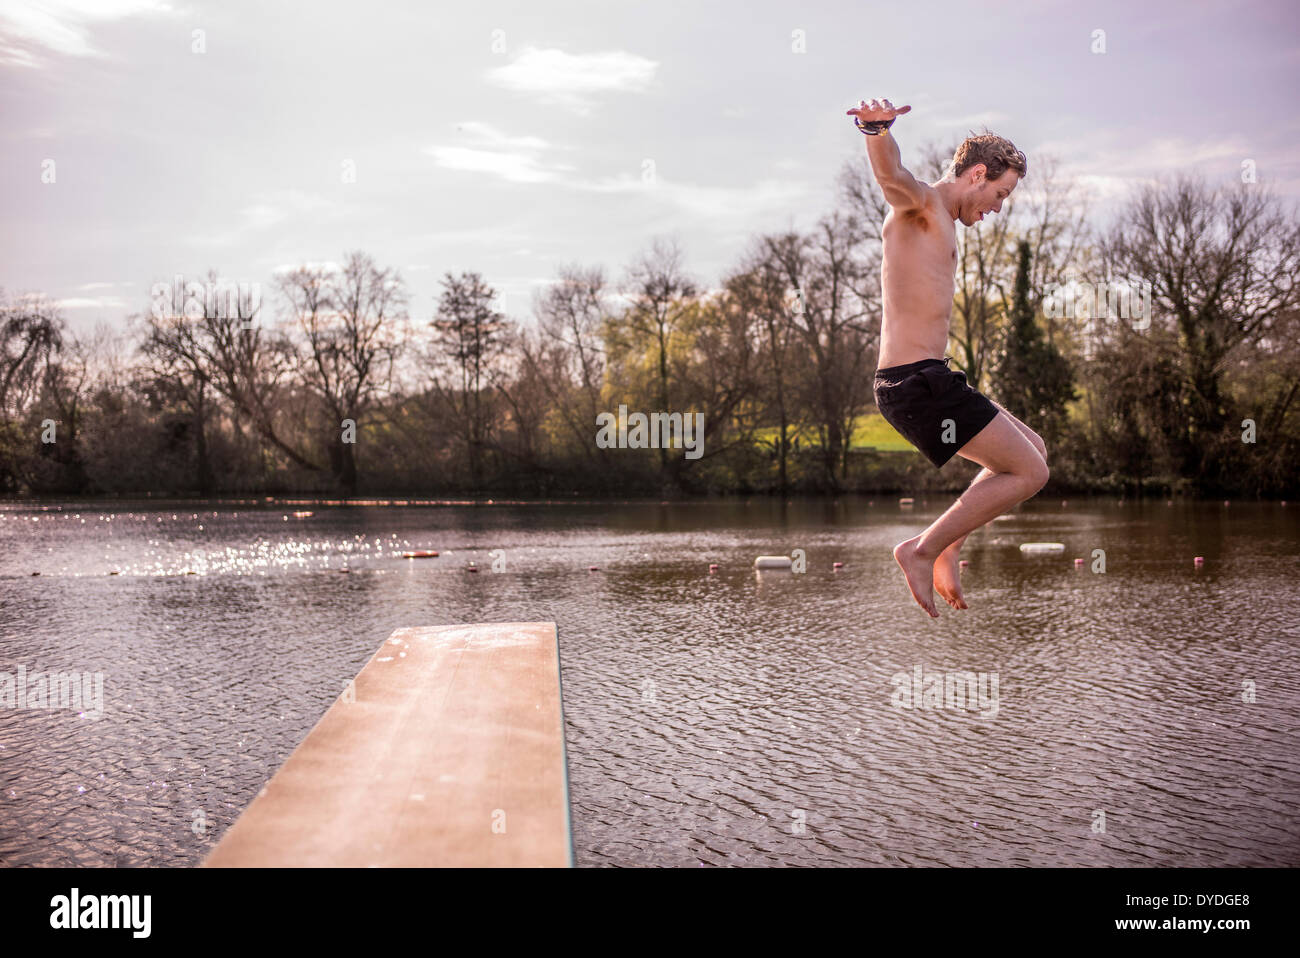 A young man in swimming trunks jumping into spring fresh water ponds. - Stock Image